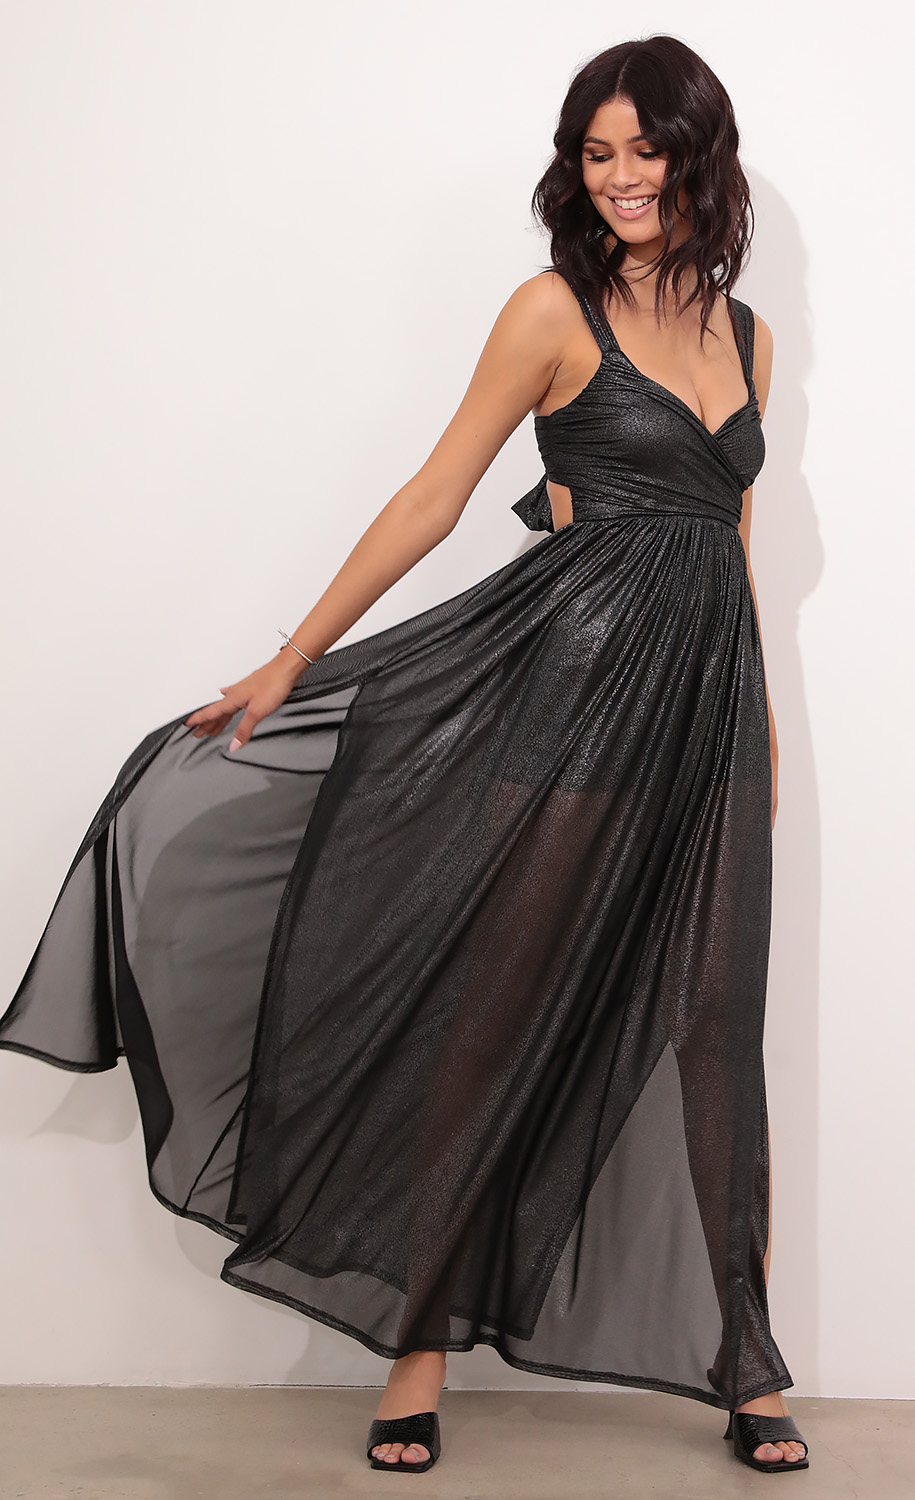 Kelly Sheer Mesh Maxi in Black Shimmer